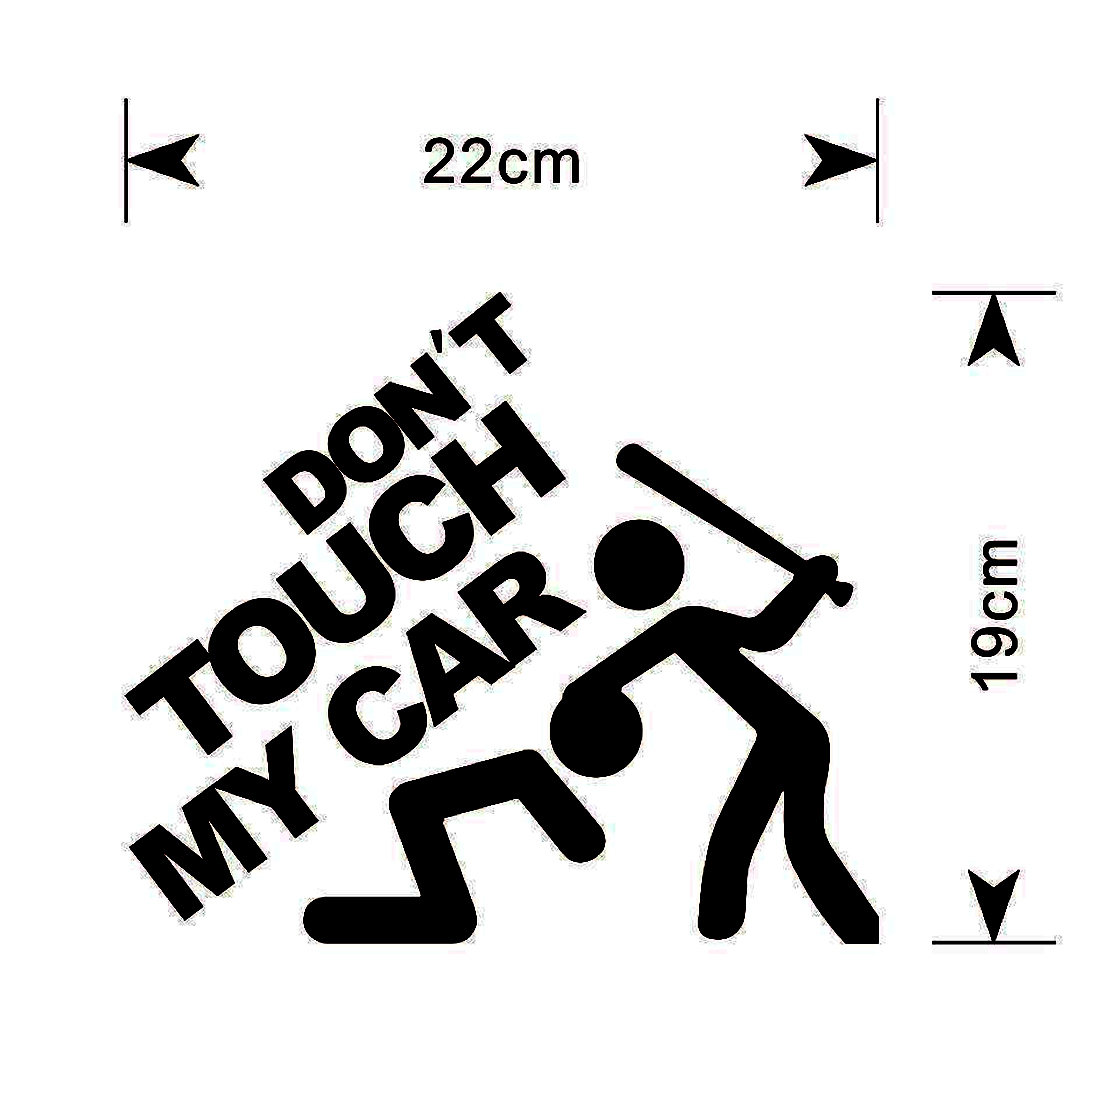 Dewtreetali Hot Sale 14*12cm Safety Warning Vinyl Car stickers DO NOT TOUCH MY CAR  car motorcycles decal styling accessories